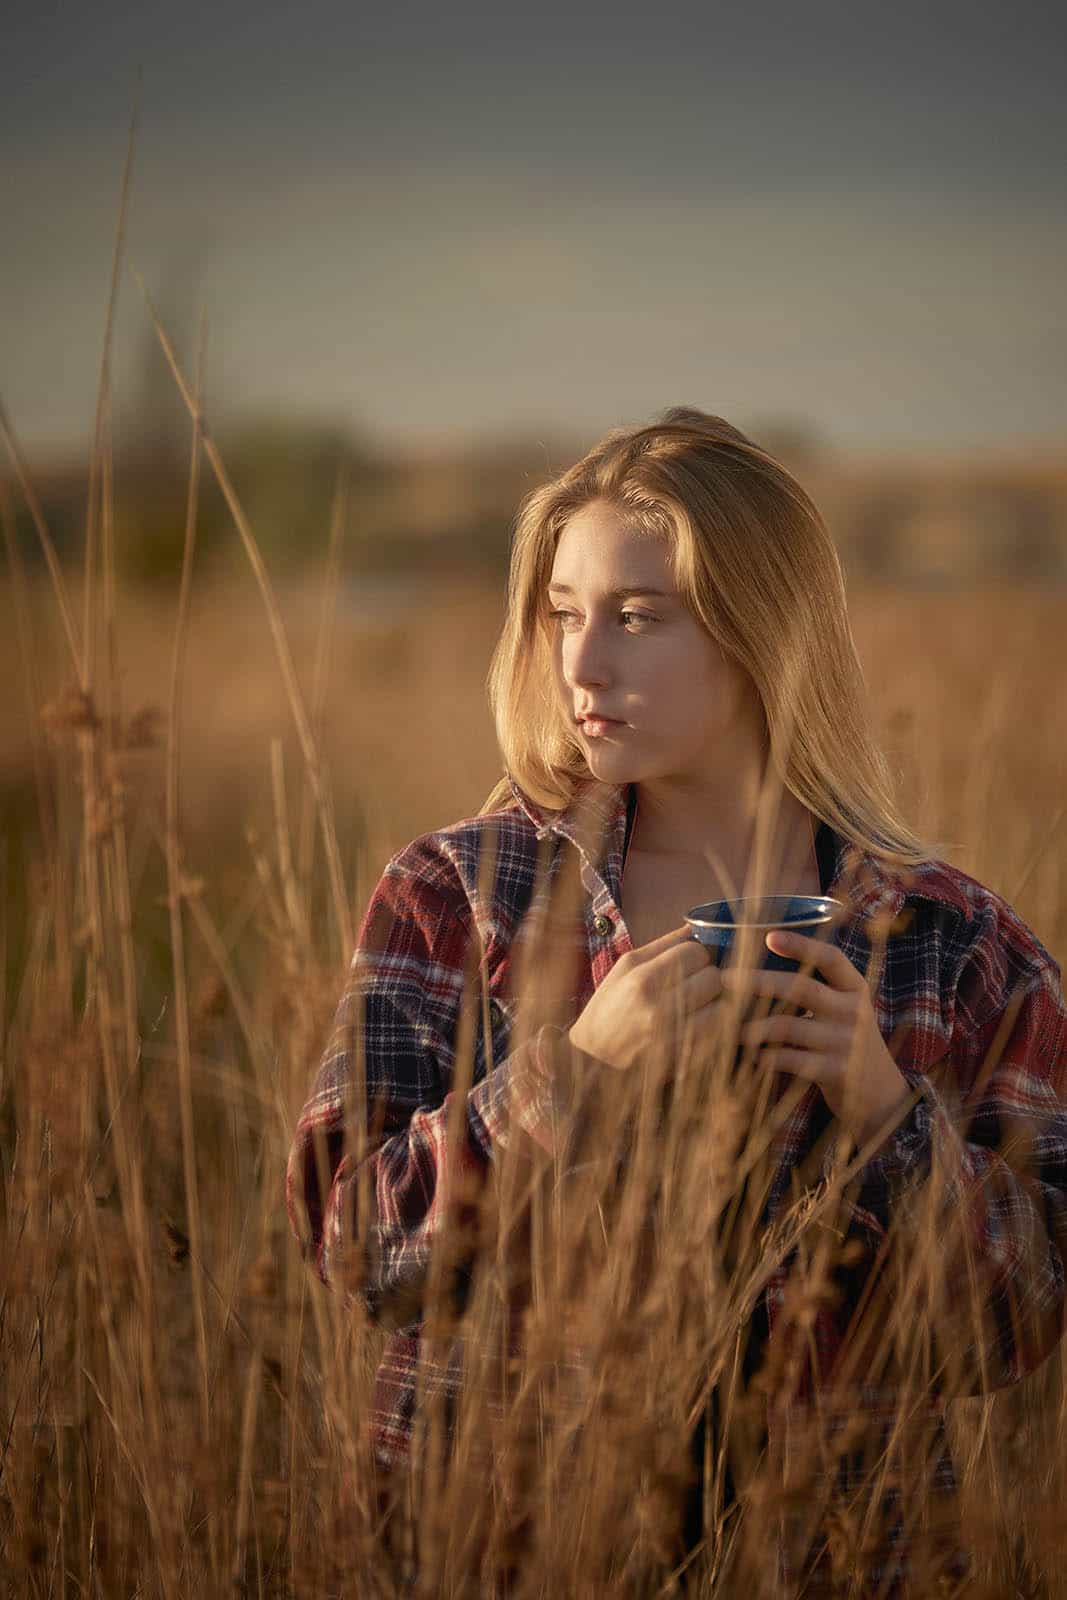 A young woman in a flannel shirt drinking coffee outdoors in a field.